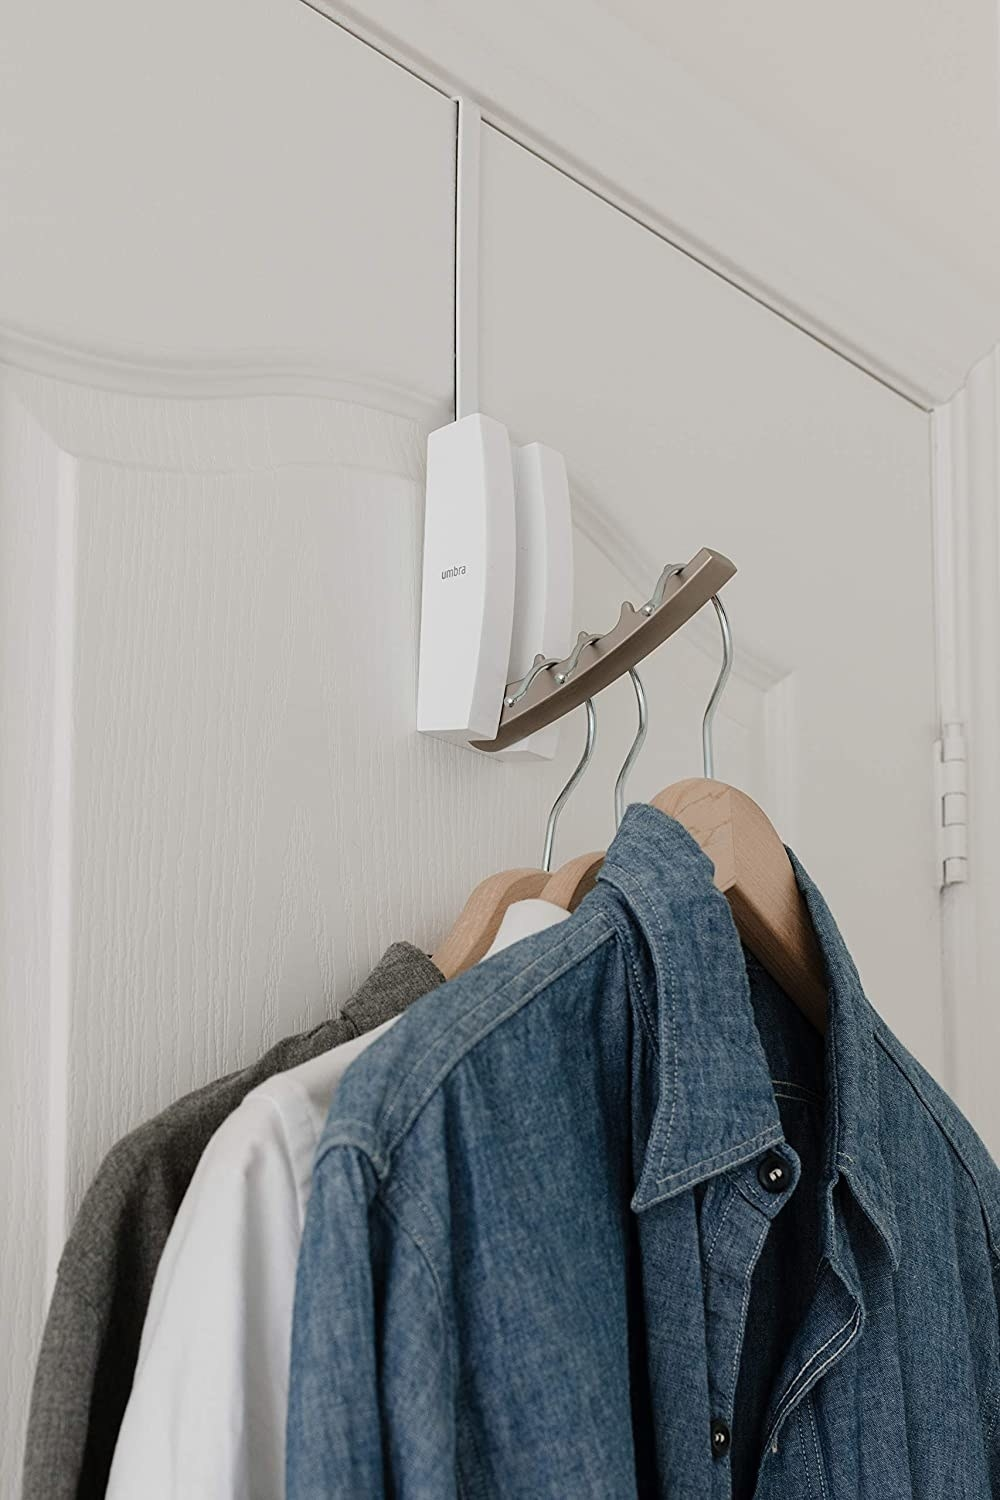 The over the door flip valet with grooves to hold hangers